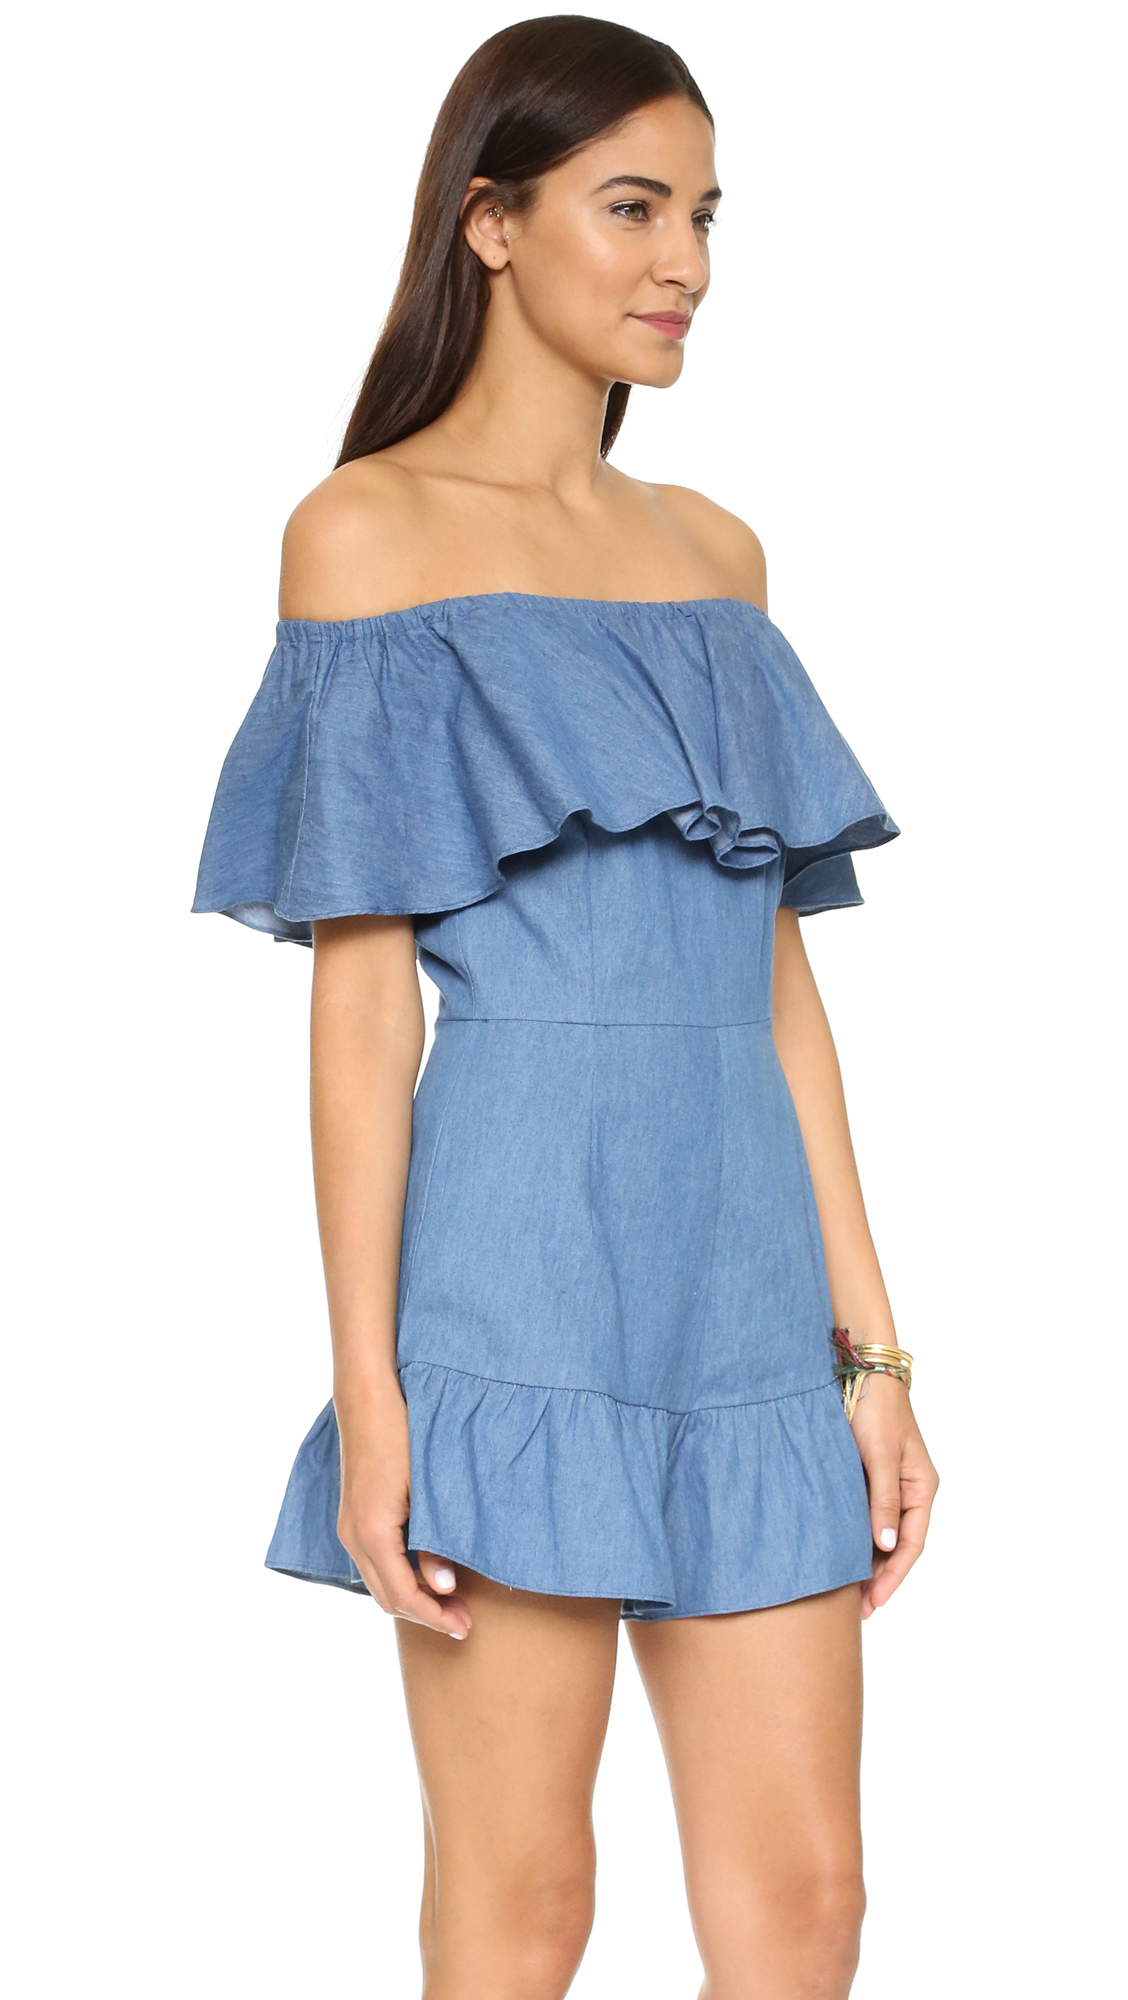 743d0b95c29d Lyst - Shakuhachi Genie Off Shoulder Romper in Blue